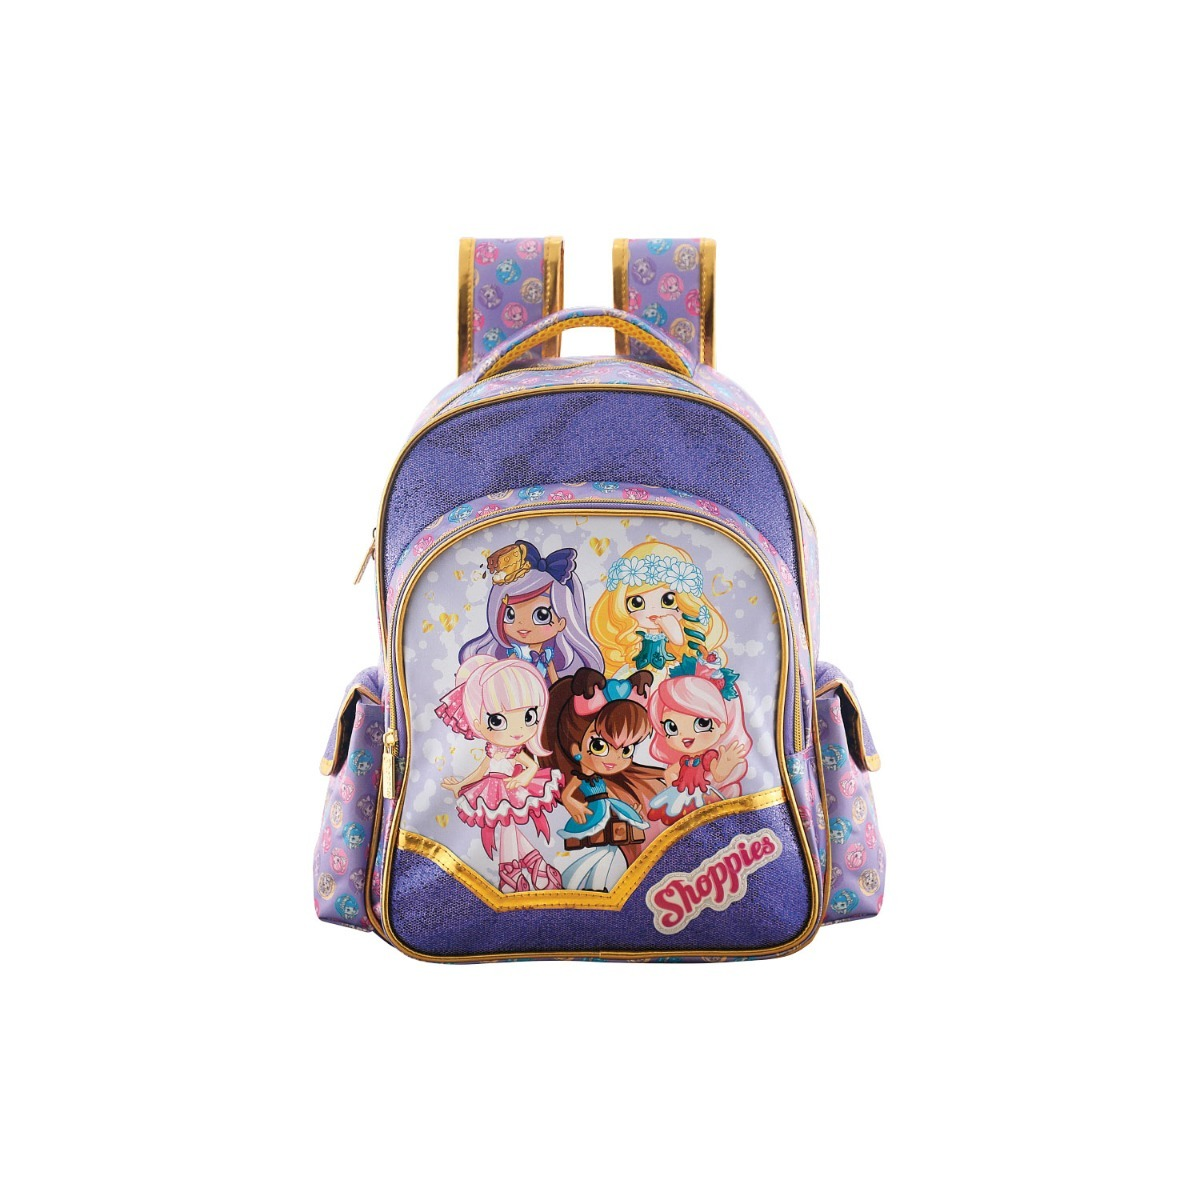 59526890c Mochila Escolar Costas Shopkins Shoppies Media Xeryus - R$ 185,78 em ...